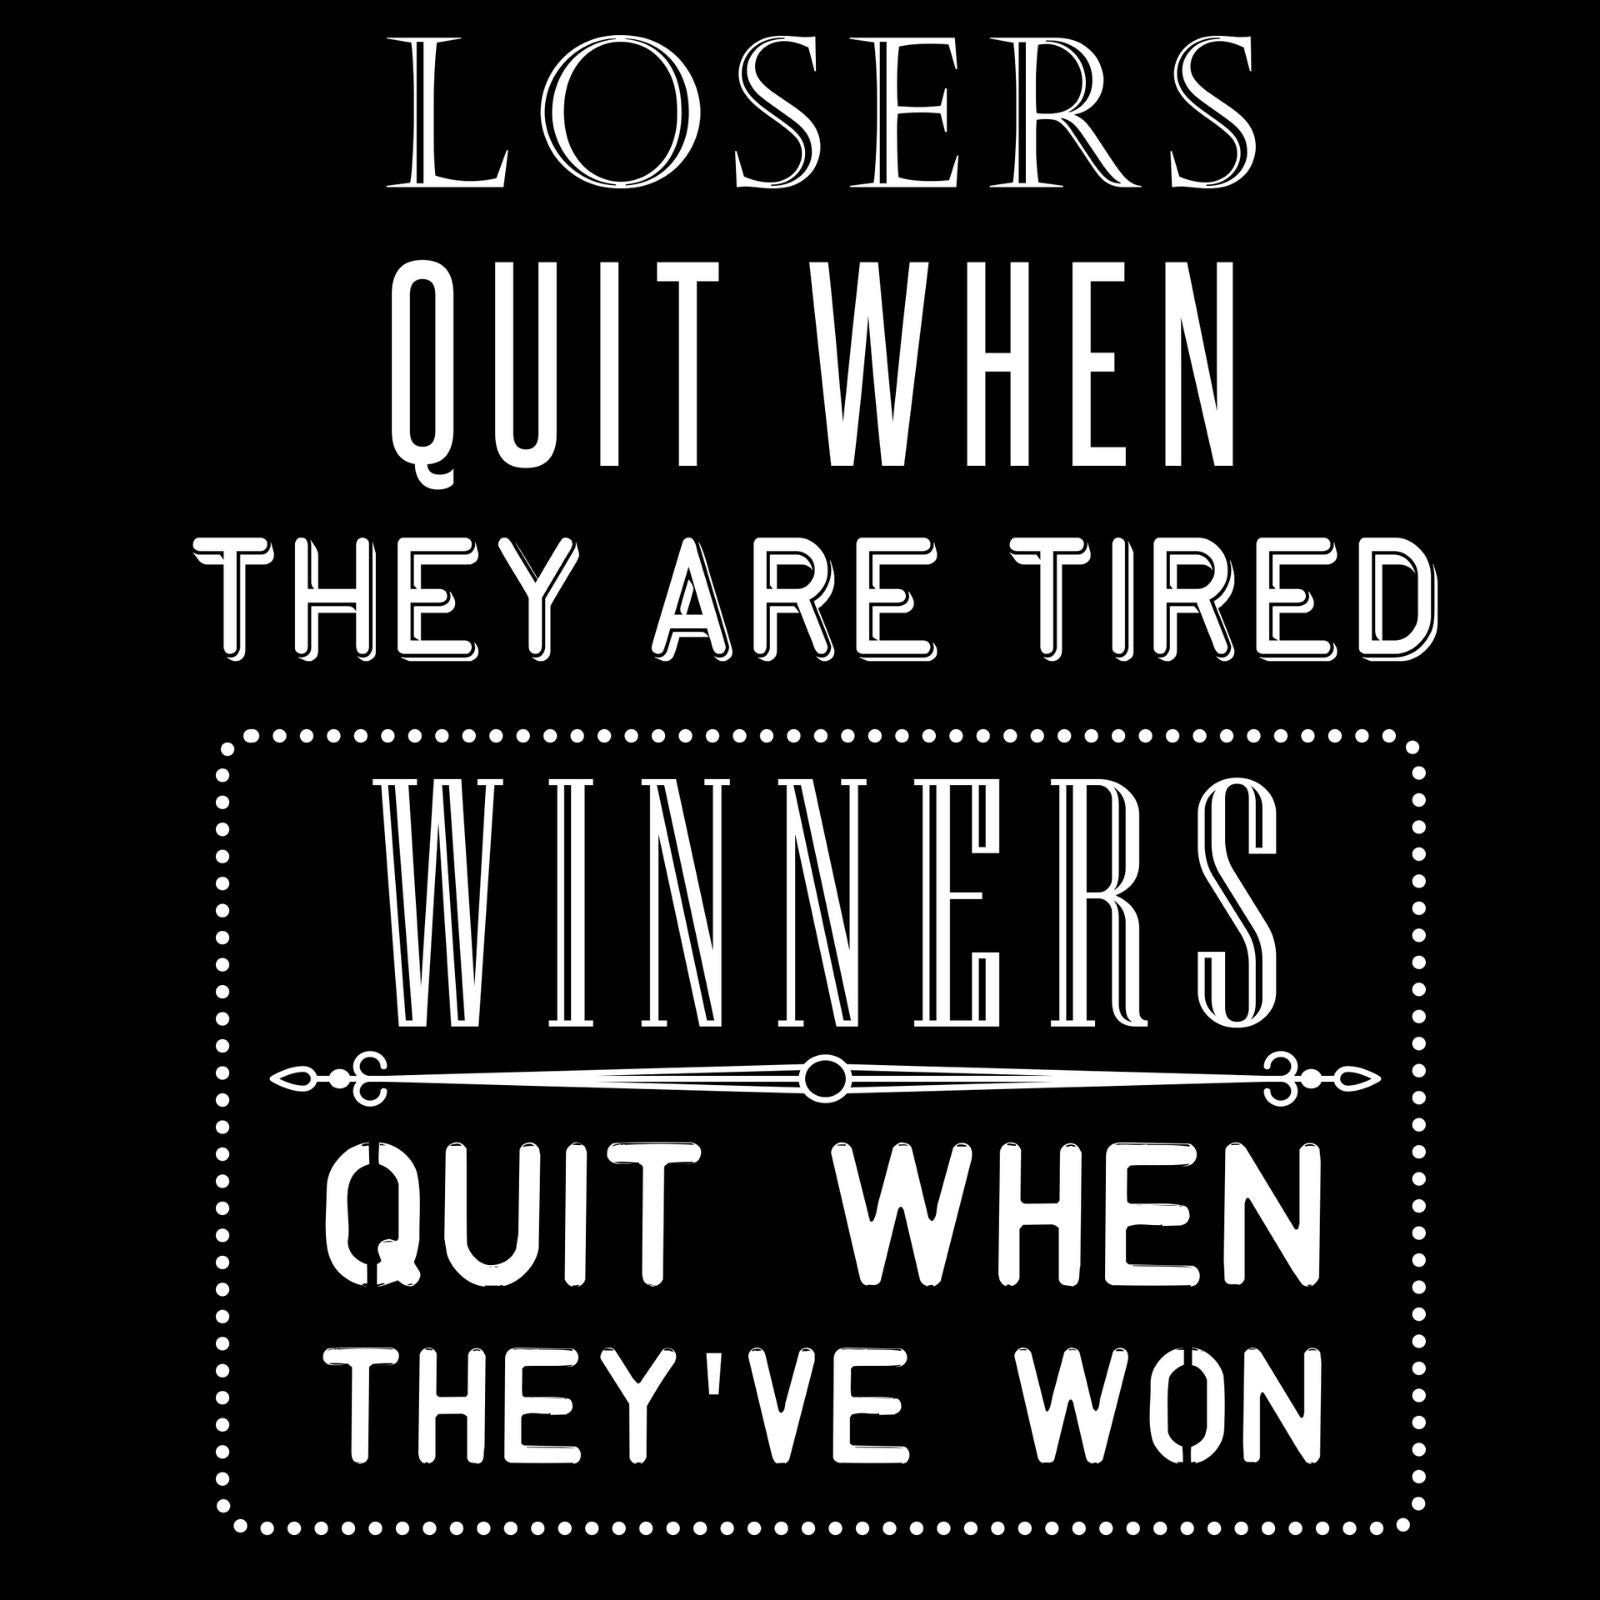 Losers Quit When They Are Tired Winners Quit They've Won - Bastard Graphics